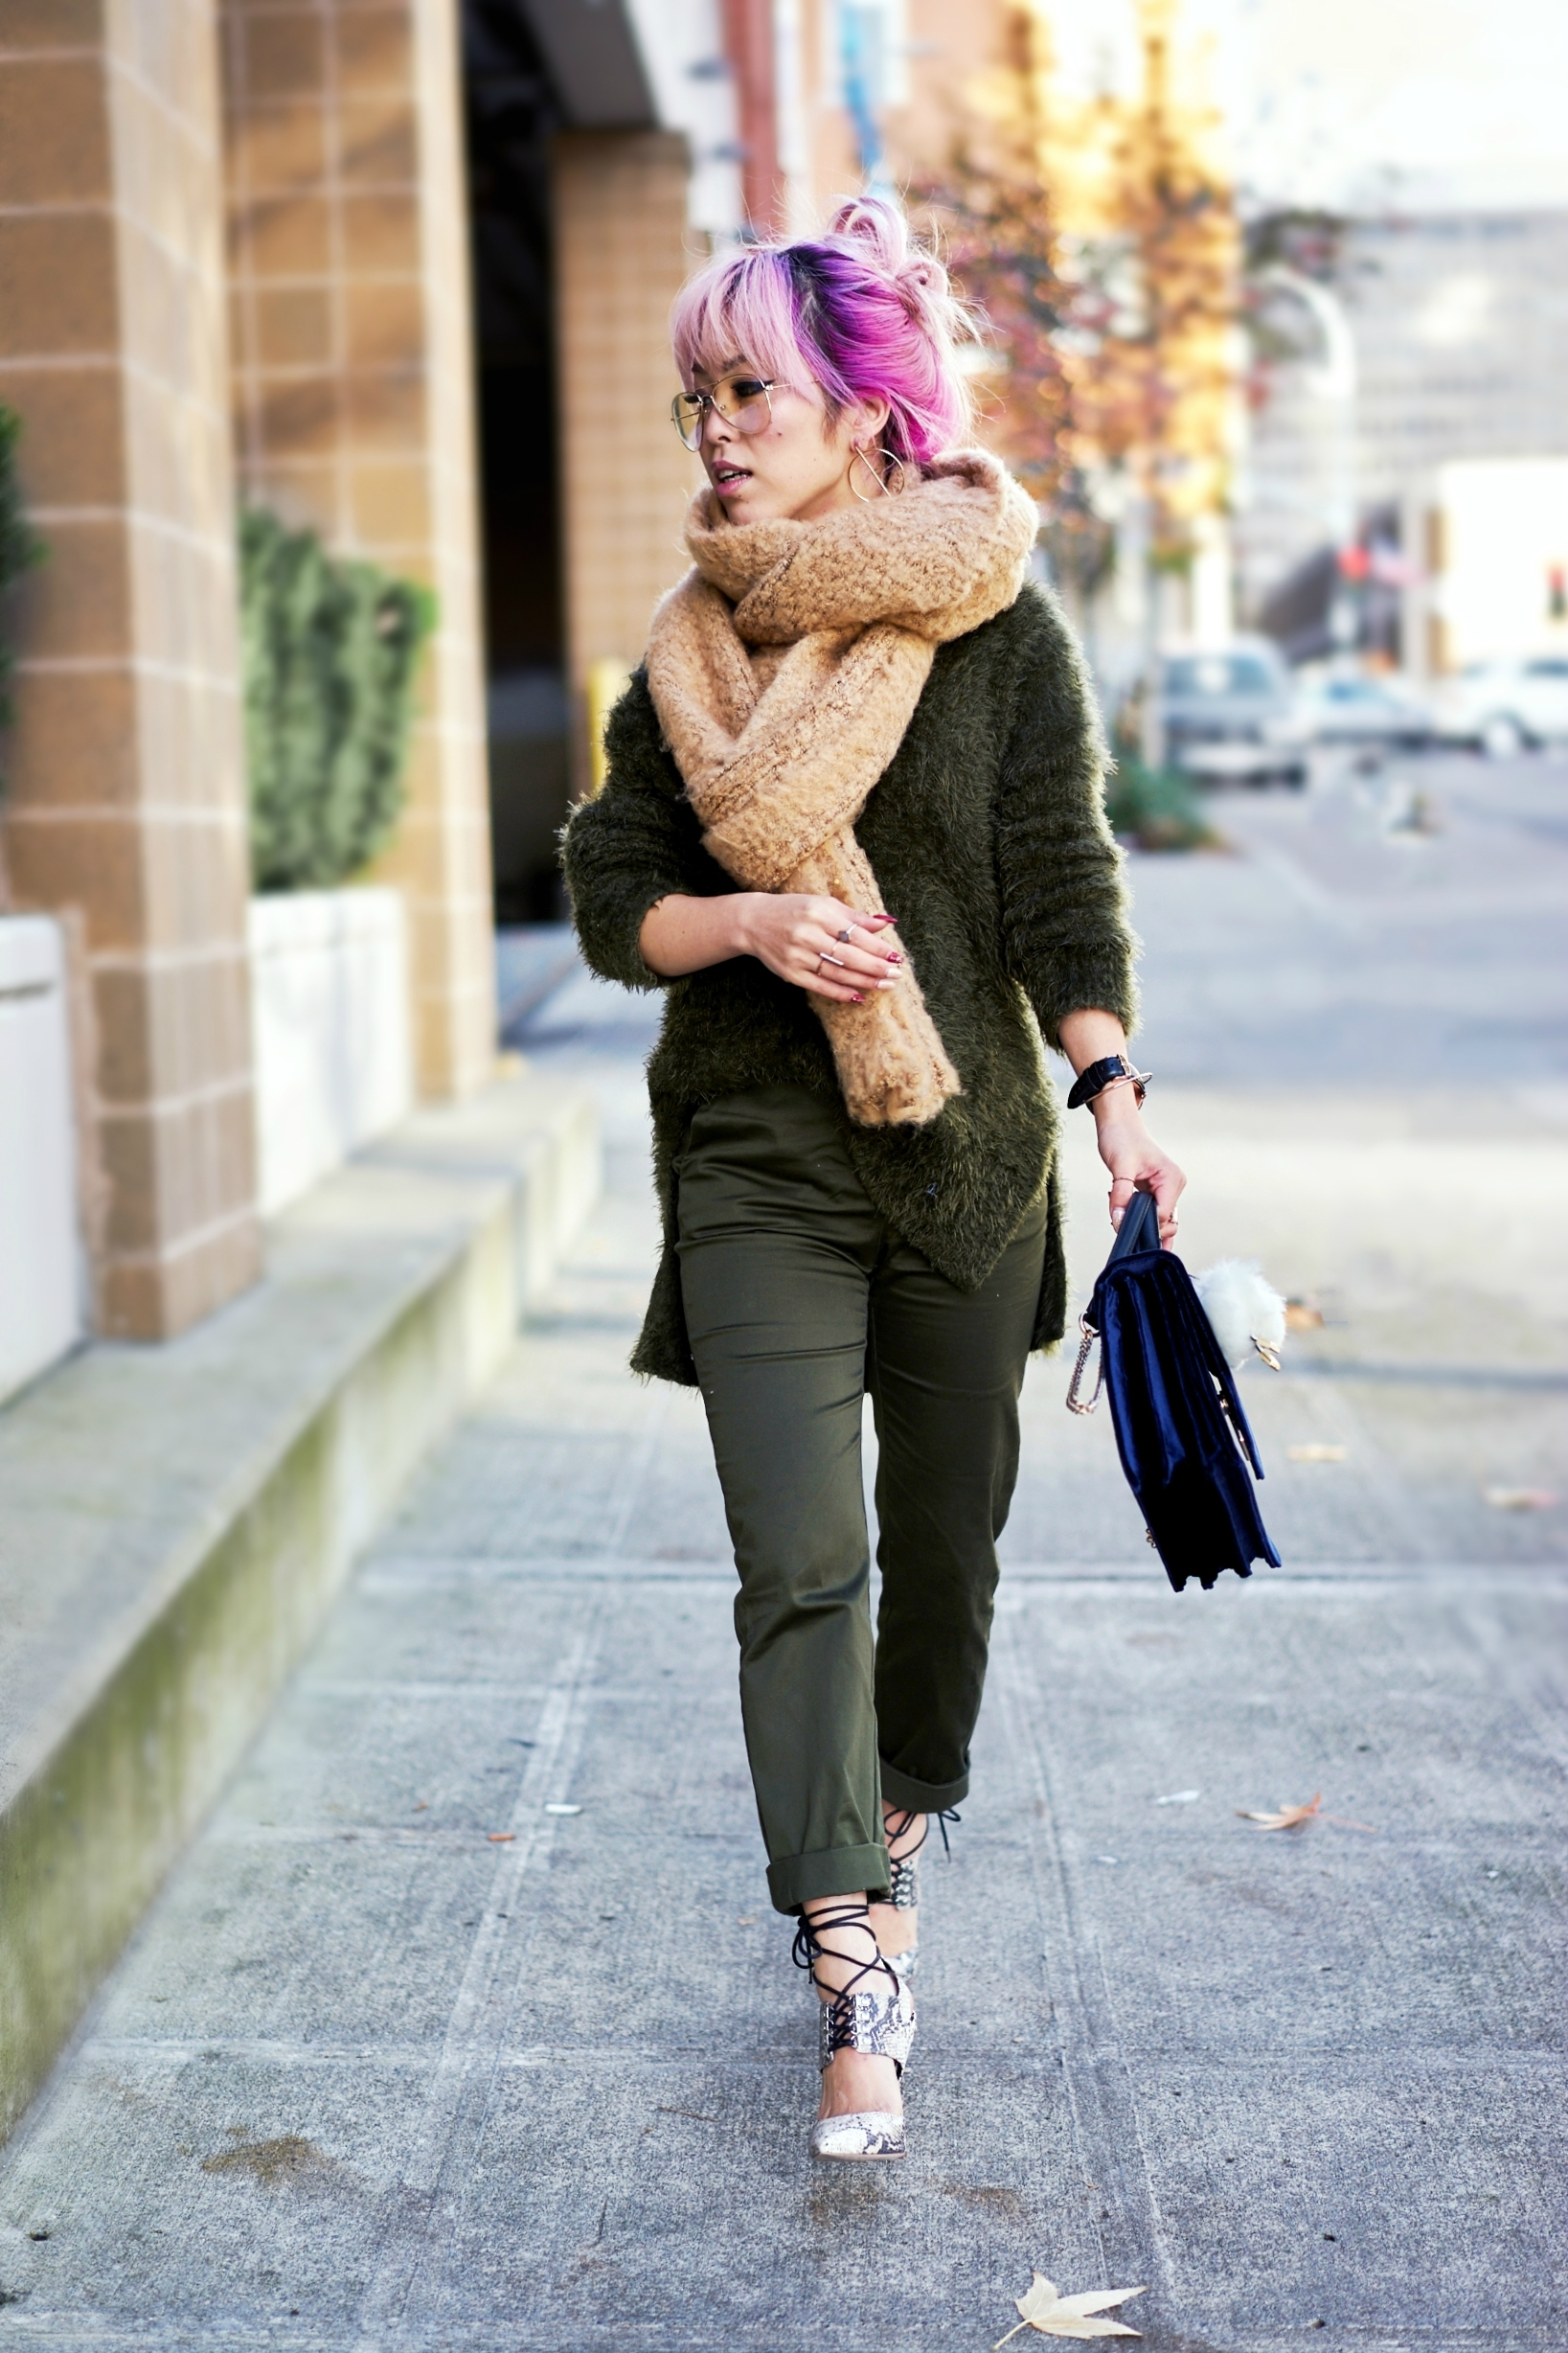 ASOS Oversized Scarf-H&M olive chunky sweater-H&M cropped trousers-ASOS python lace-up pumps-ZARA navy velvet bag-mango earrings-Daniel Wellington Watch-Clear Lens aviator-Aika's Love Closet-Seattle Style blogger-japanese-pink hair-colored hair